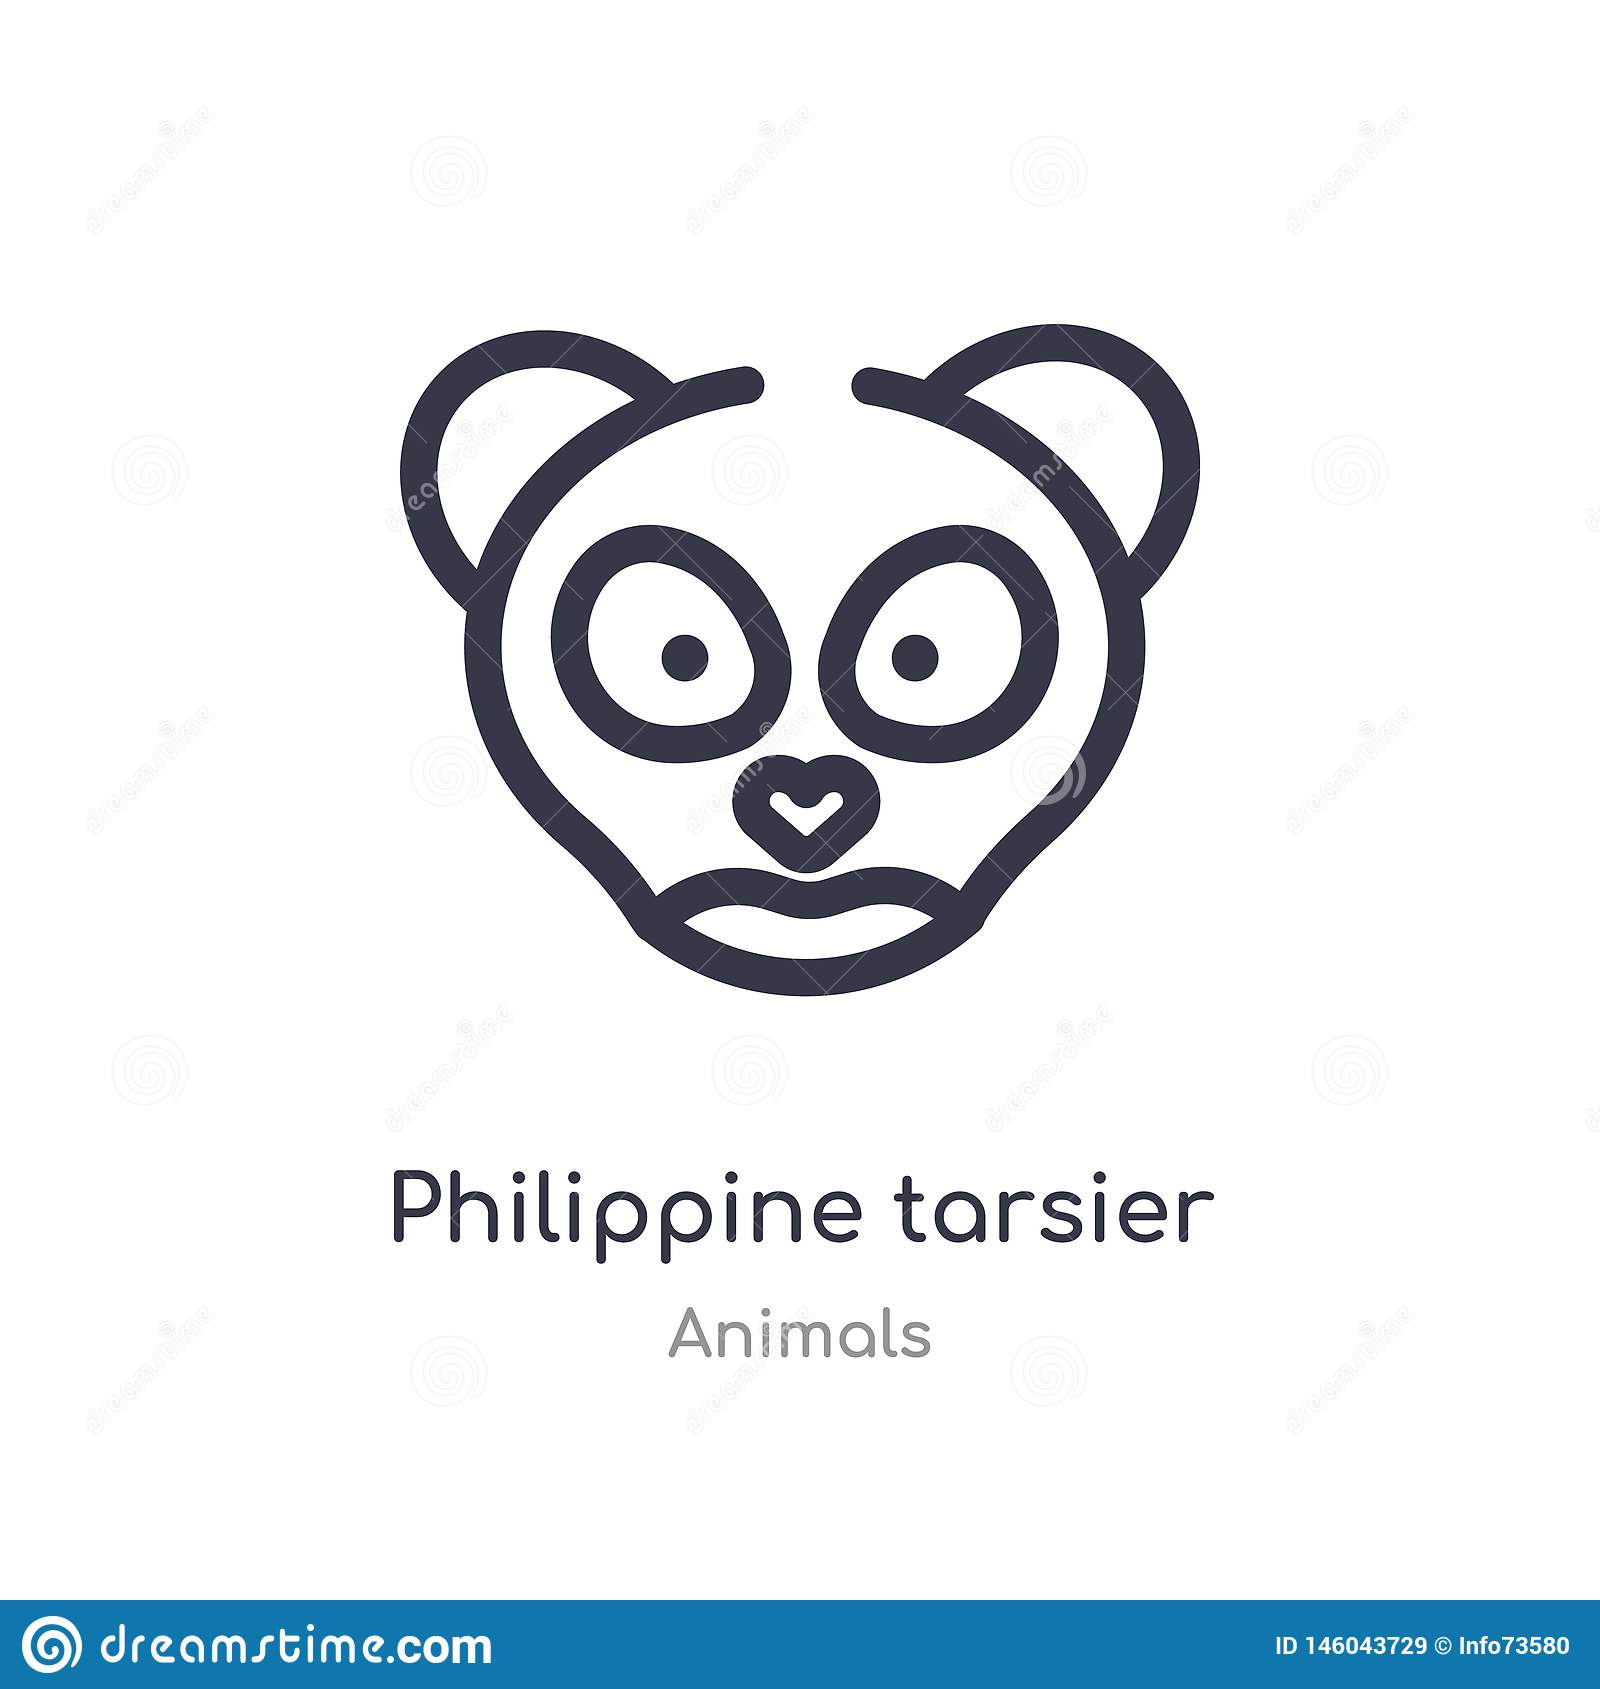 philippine tarsier outline icon. isolated line vector illustration from animals collection. editable thin stroke philippine